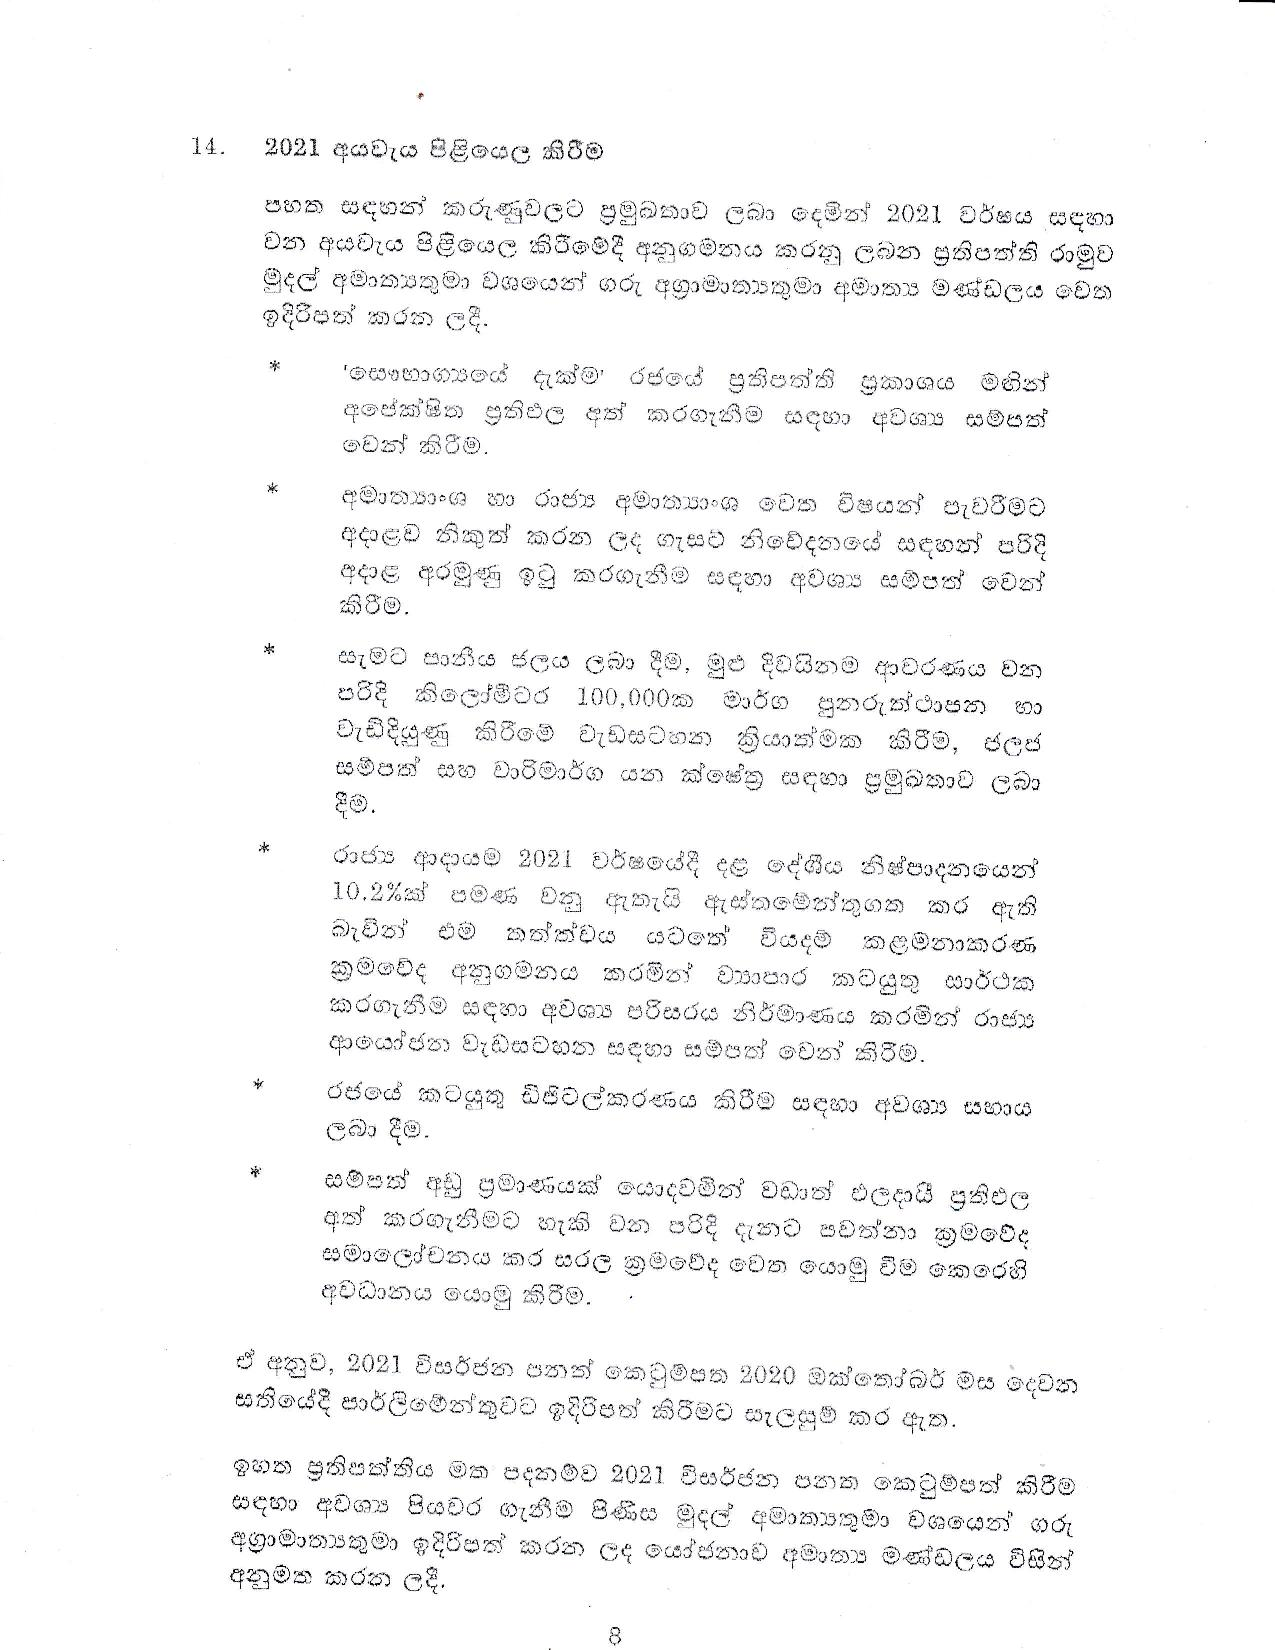 Cabinet Decision on 16.09.2020 page 008